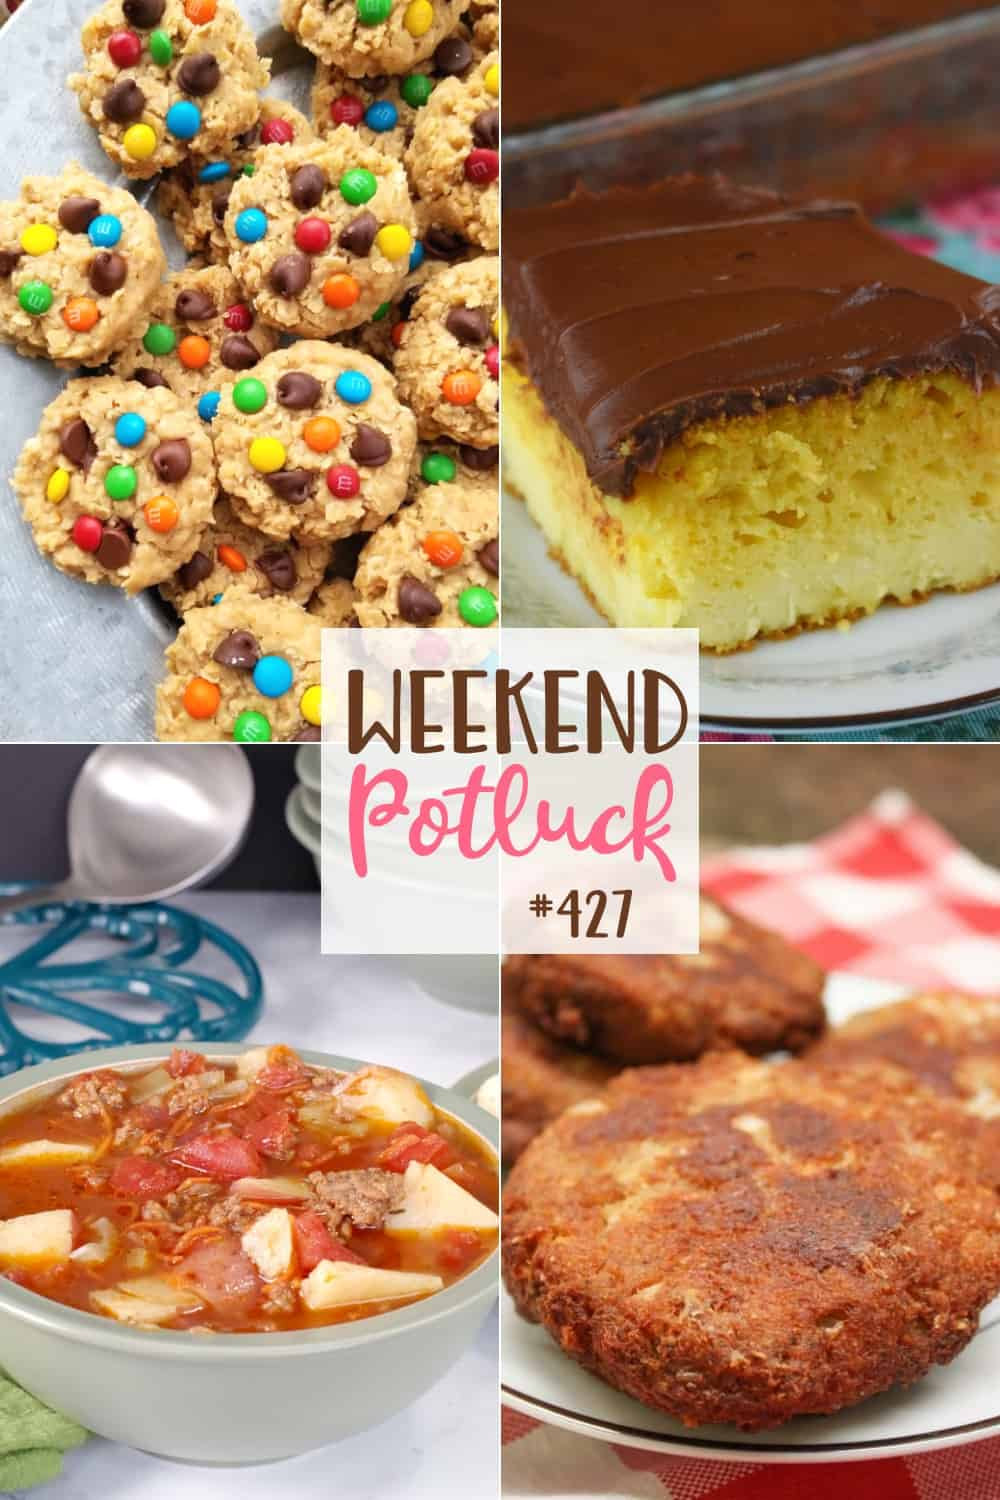 Weekend Potluck featured recipes include: Southern Salmon Patties, Granny's Boston Cream Cake, Easy Hamburger Soup and No-Bake Monster Cookies